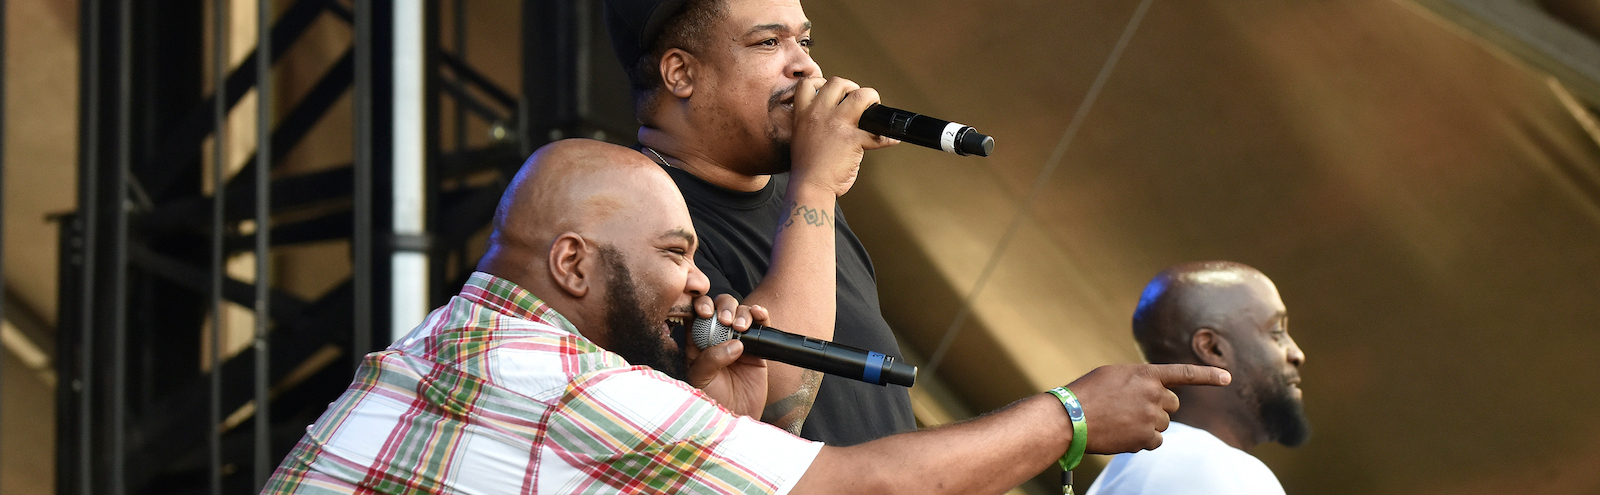 De La Soul Appeared On 'Teen Titans Go!' To Fight An Animated Octopus Trying To Steal Their Music